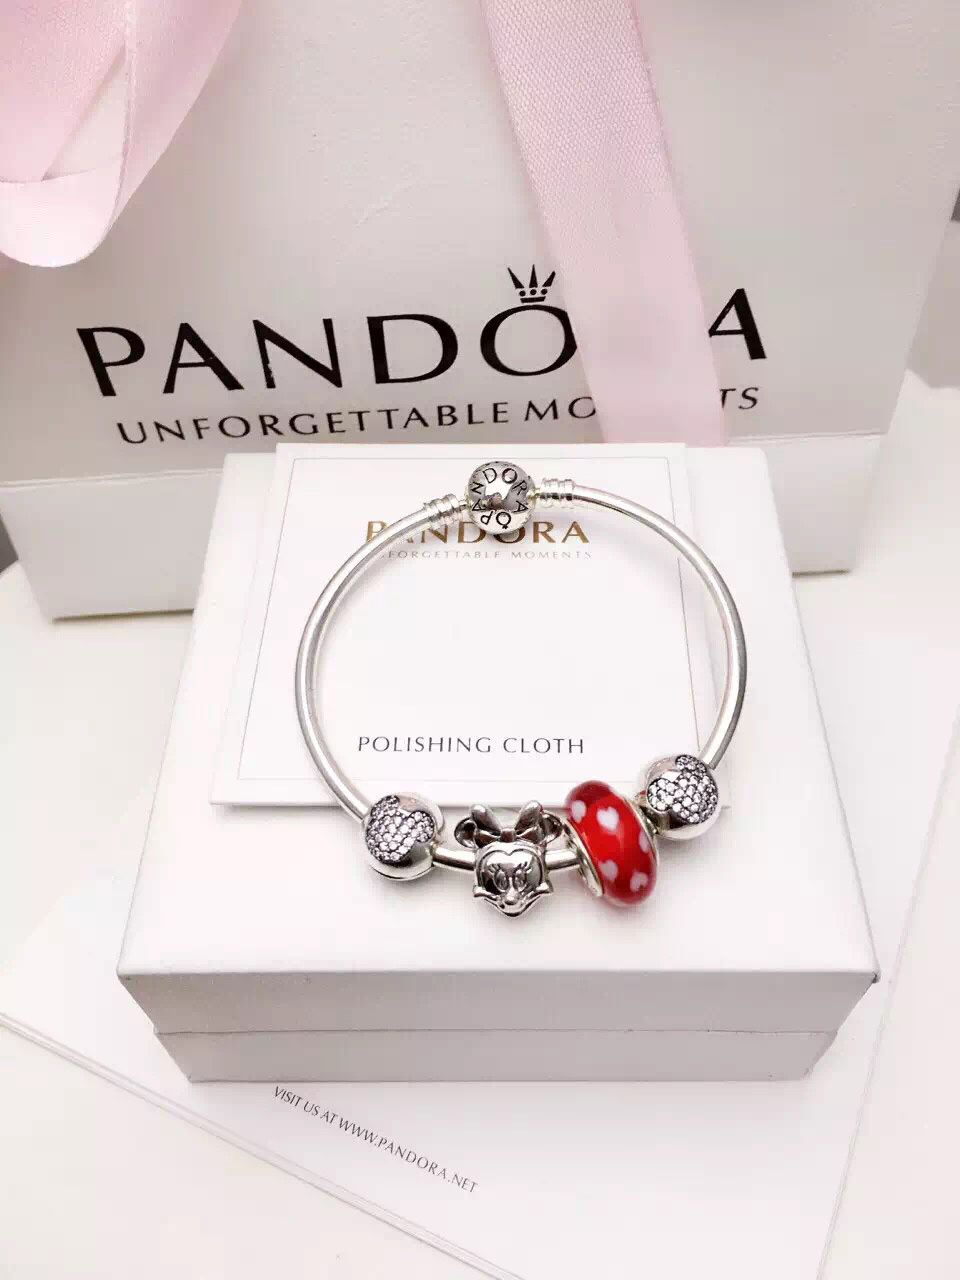 9ec38fb8e 50% OFF!!! $139 Pandora Bangle Charm Bracelet Red. Hot Sale!!! SKU ...